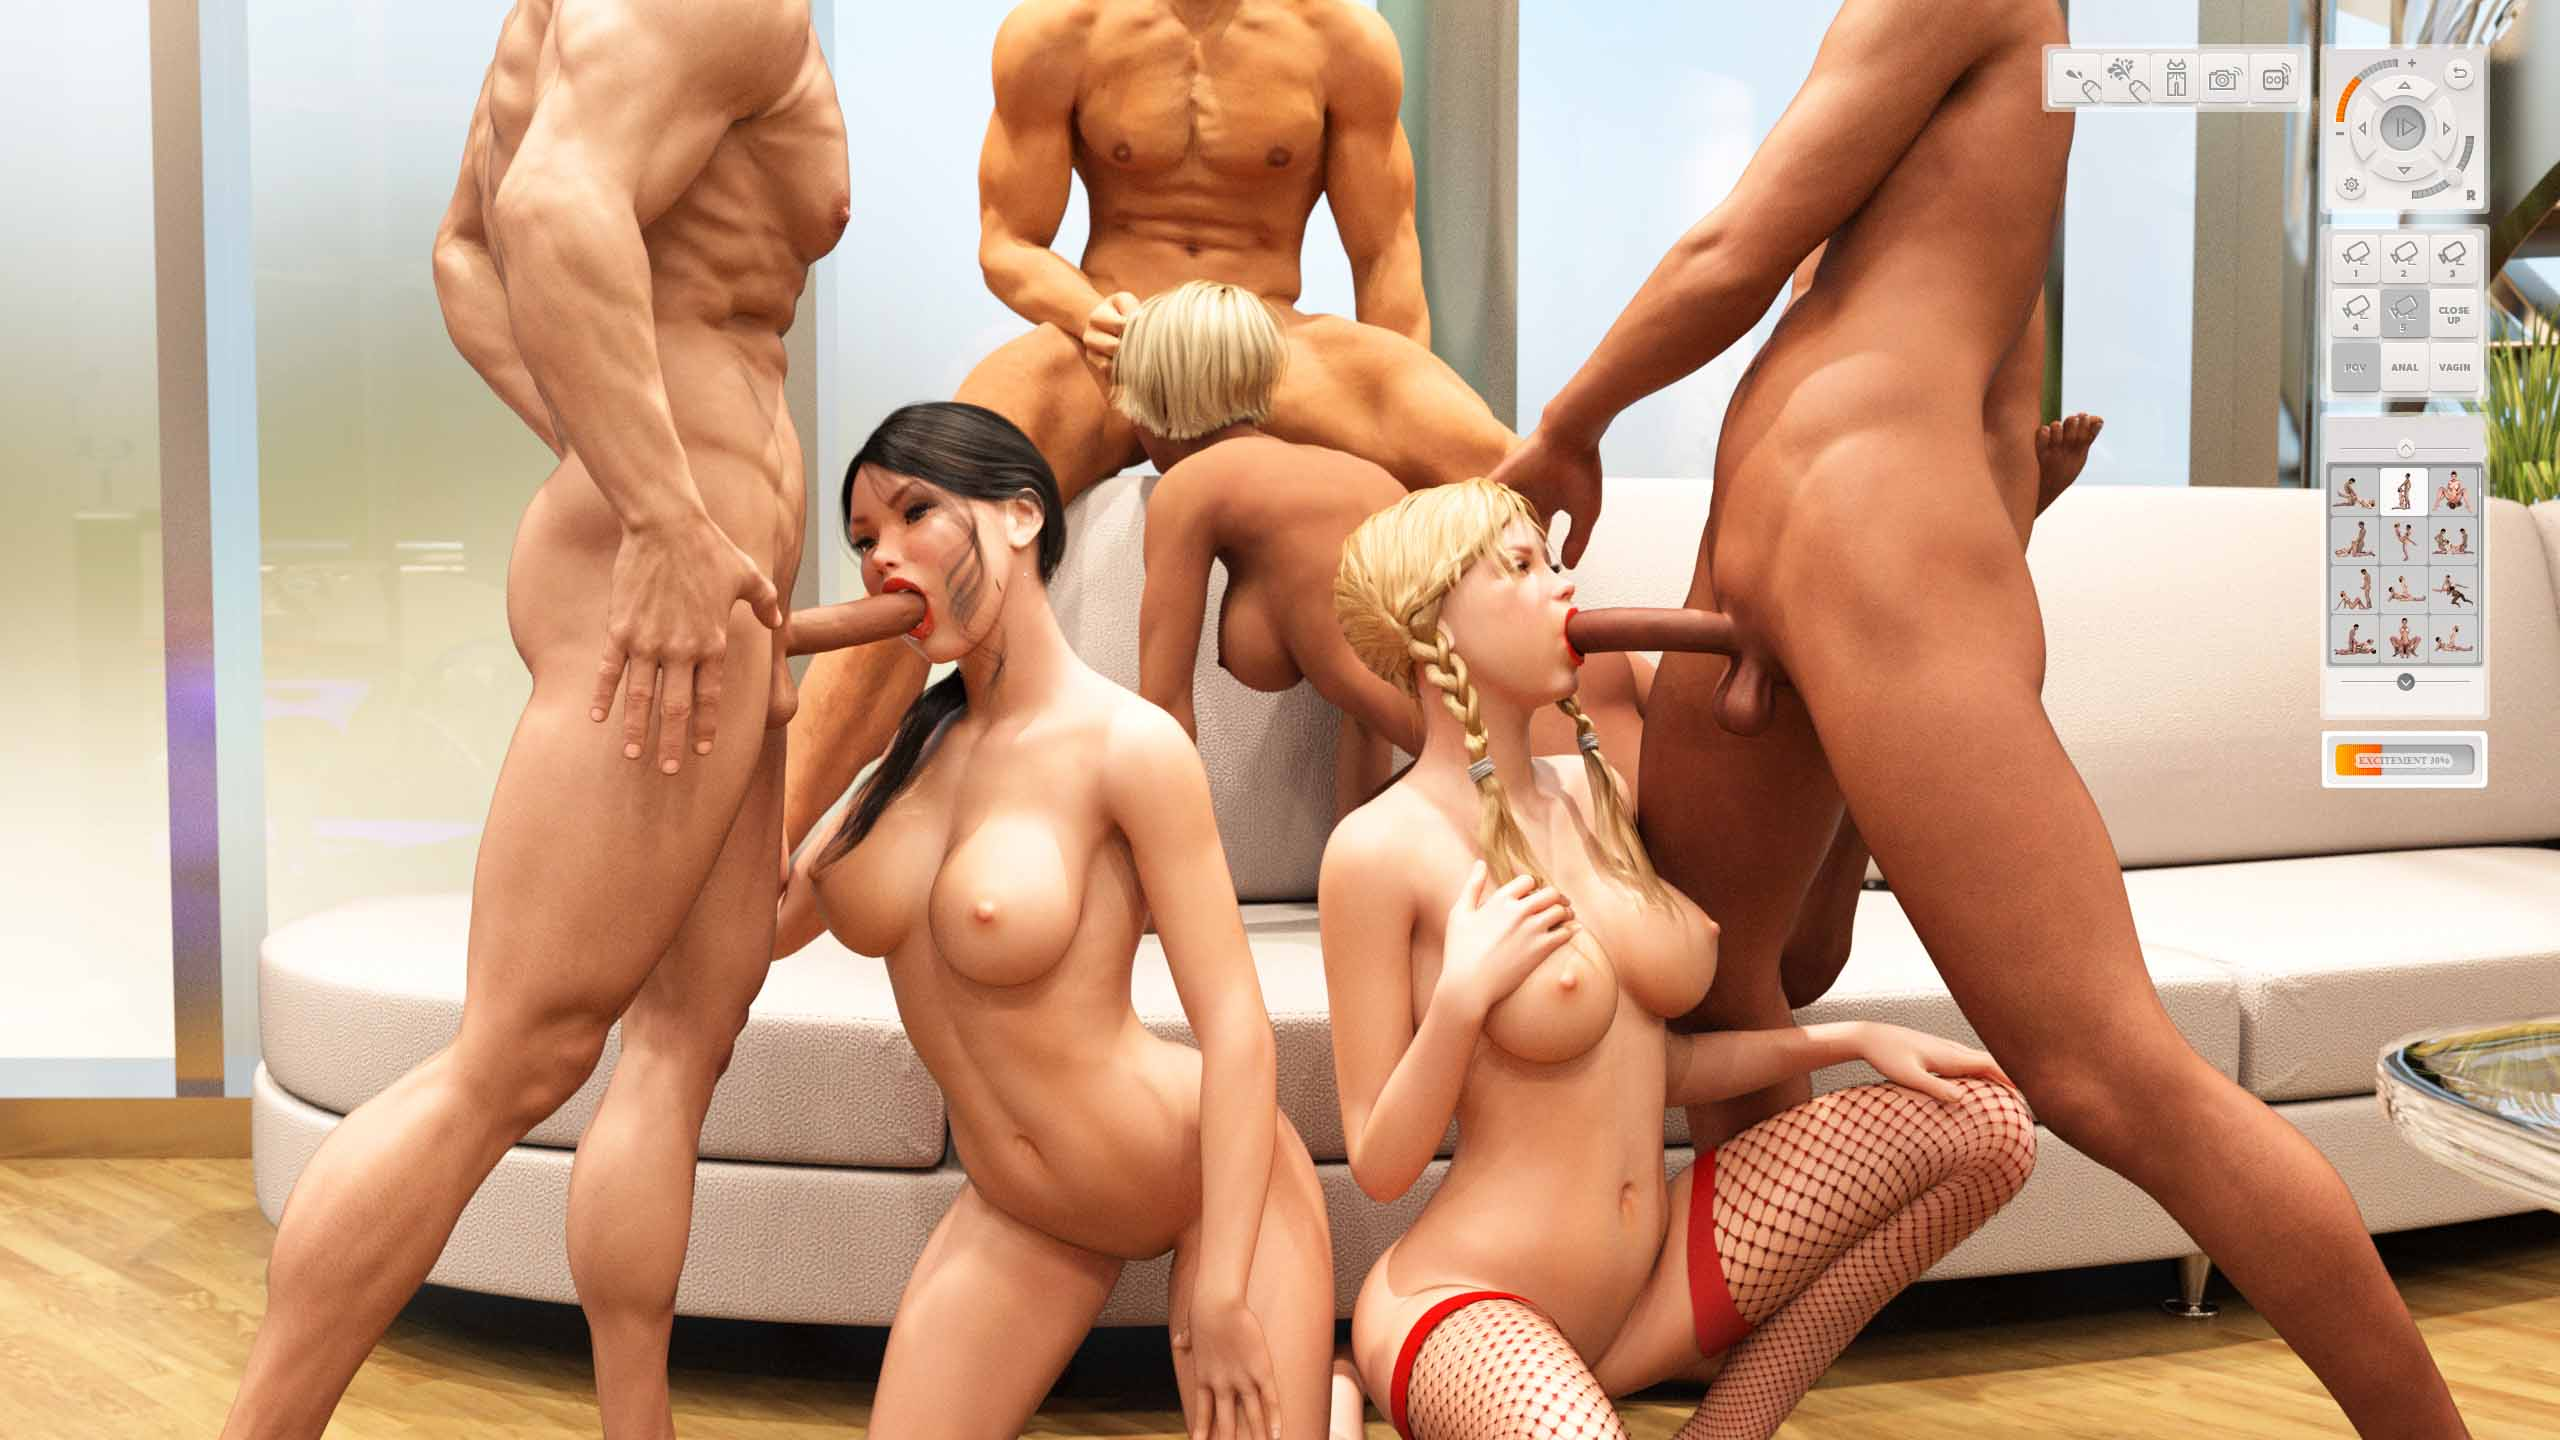 porn affs - best 3d sex game - porn affiliate